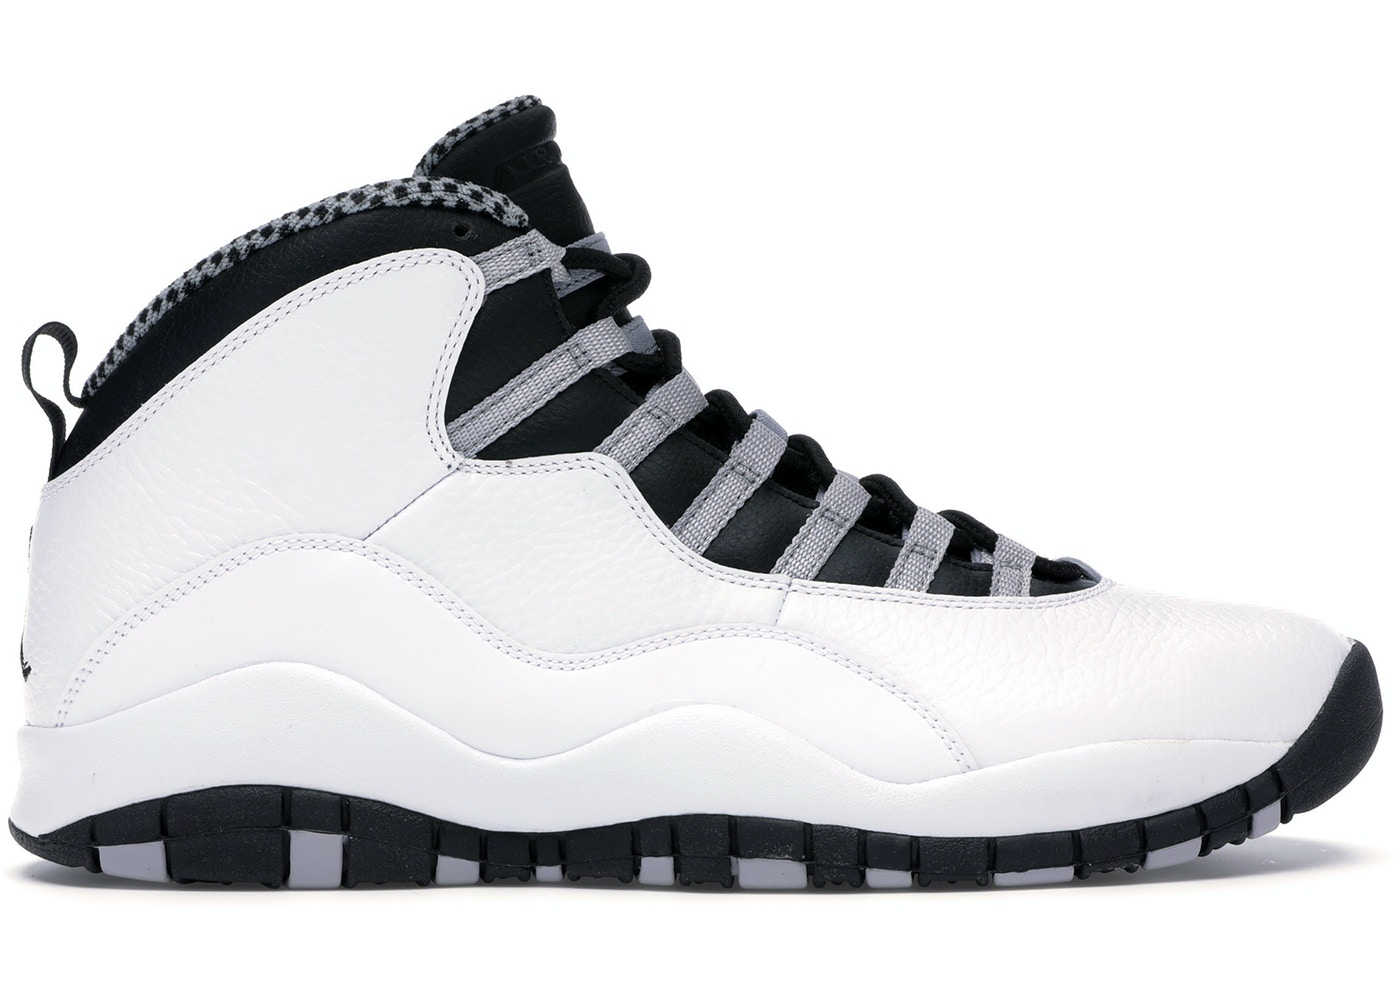 online store 25541 670c6 Buy Air Jordan 10 Shoes & Deadstock Sneakers